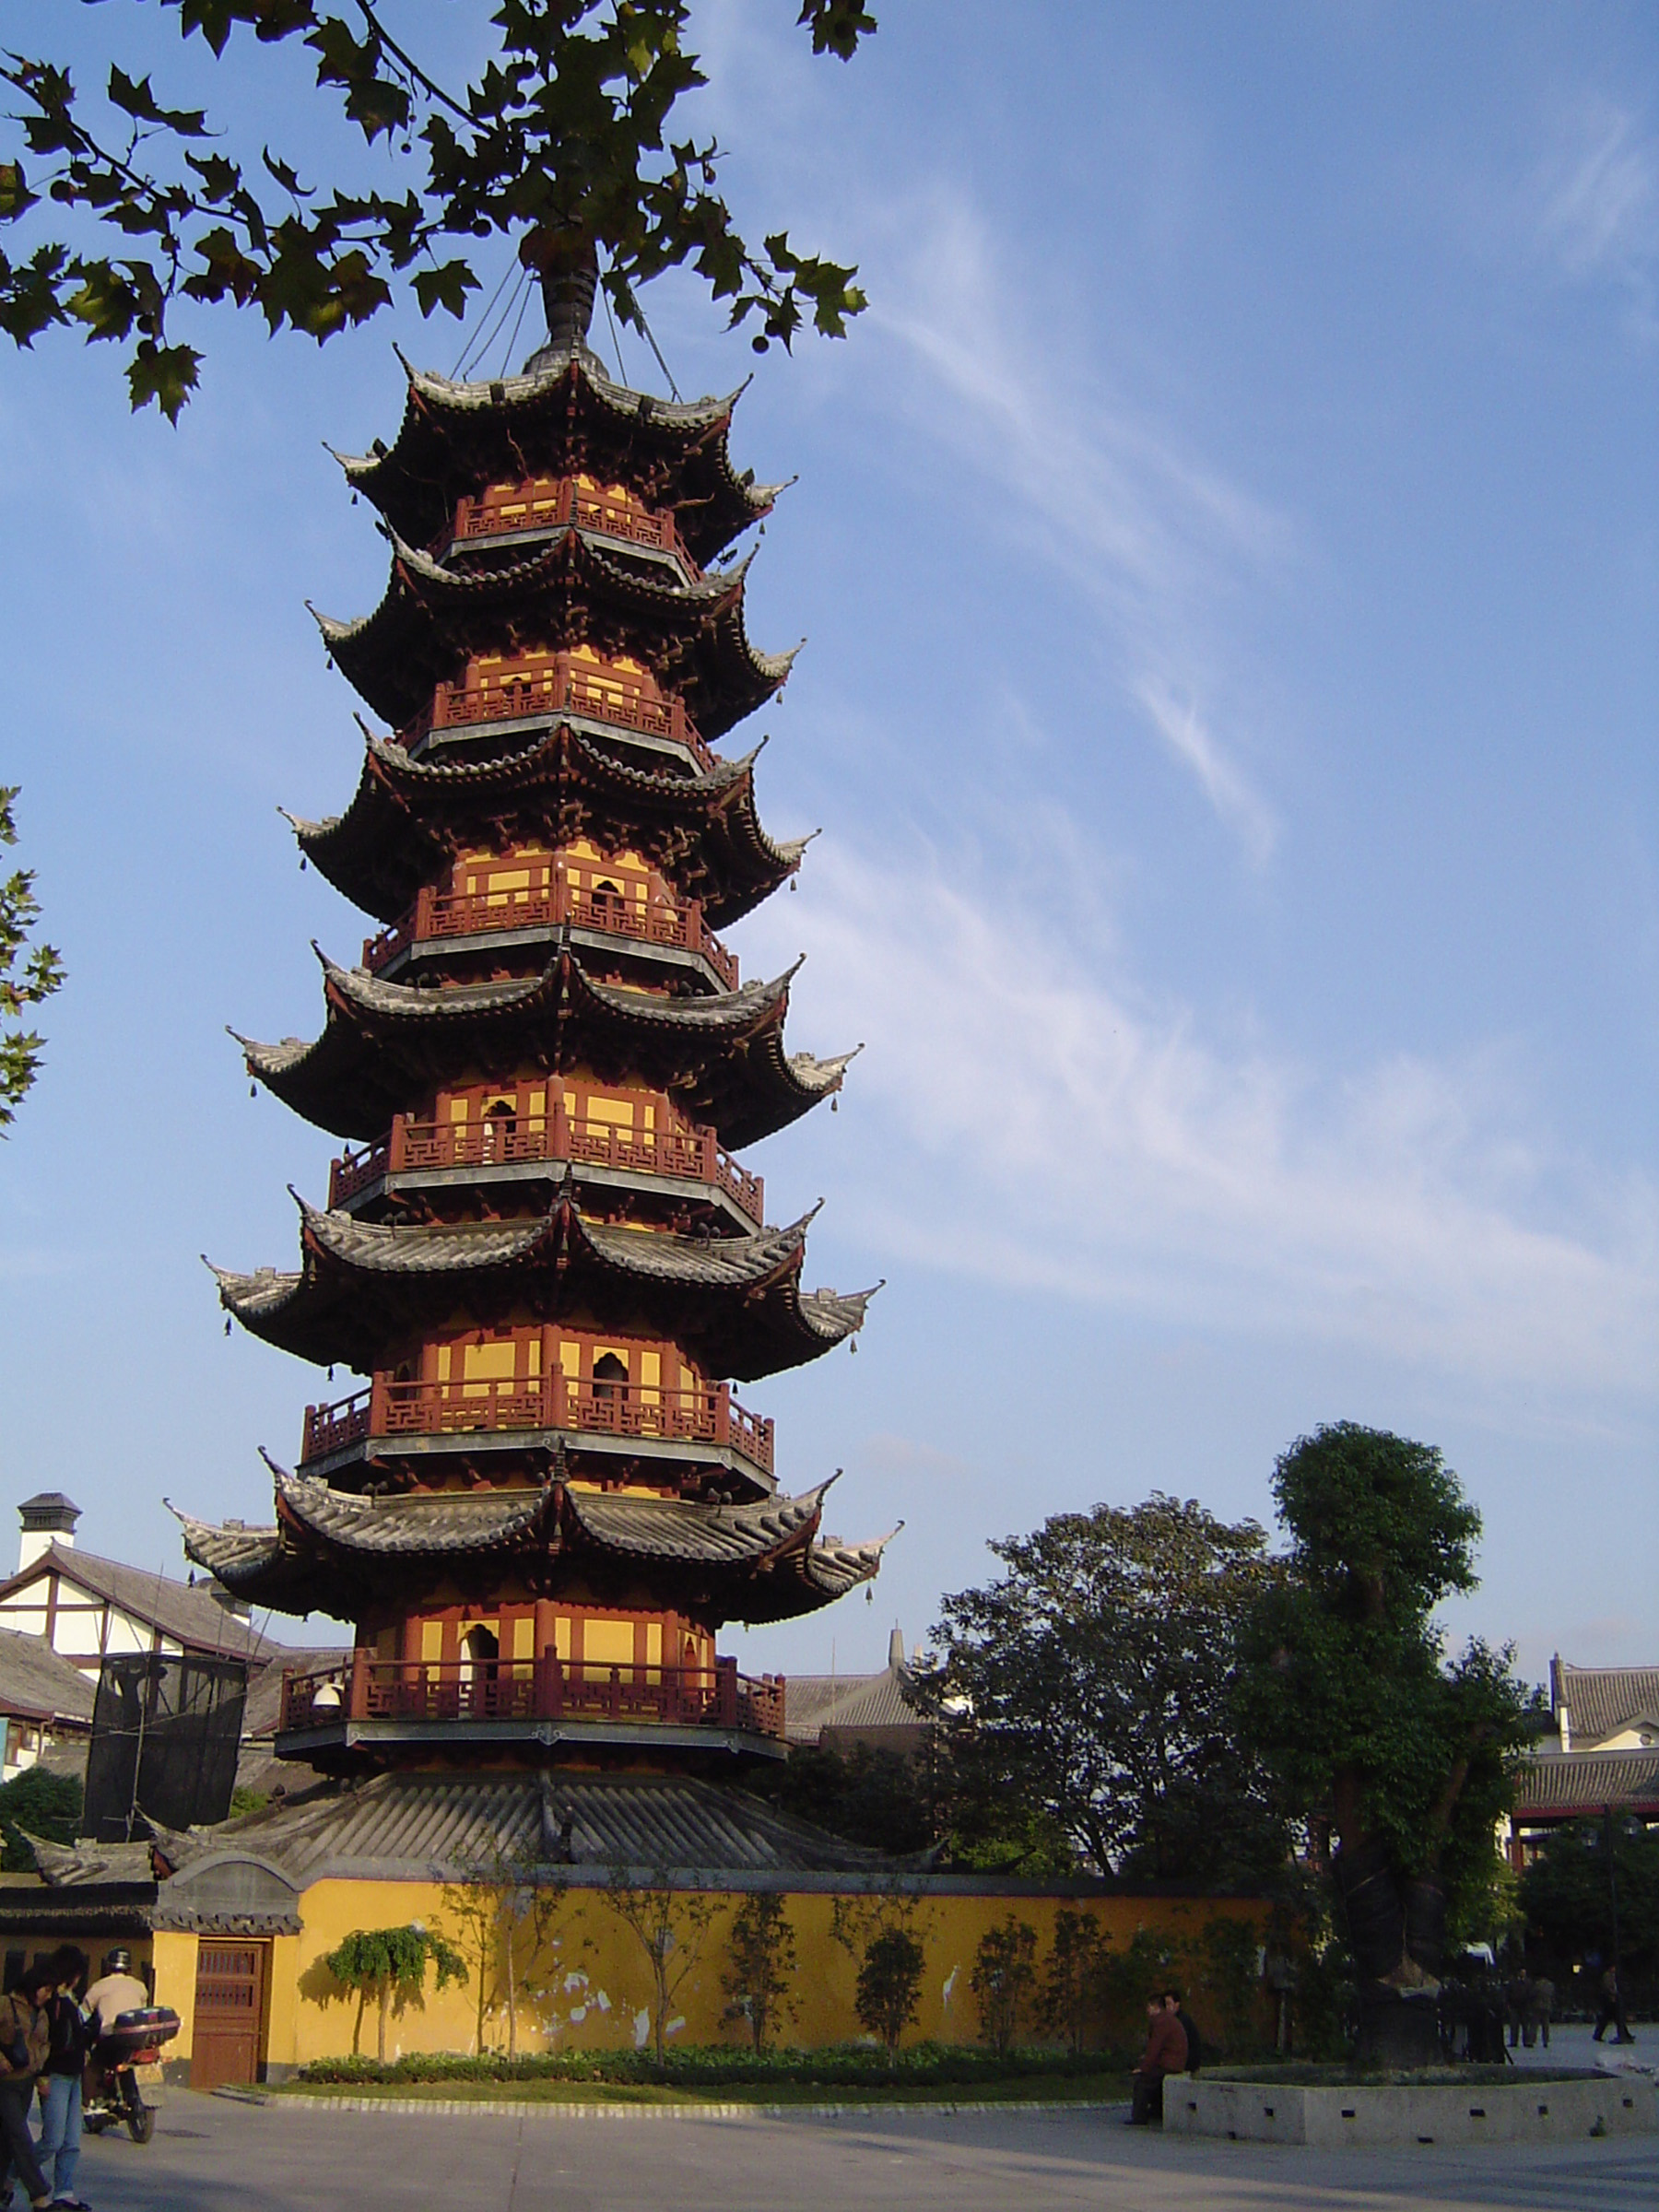 Famous Historic High Pagoda Building in China. Captured in Light Blue Sky Background.